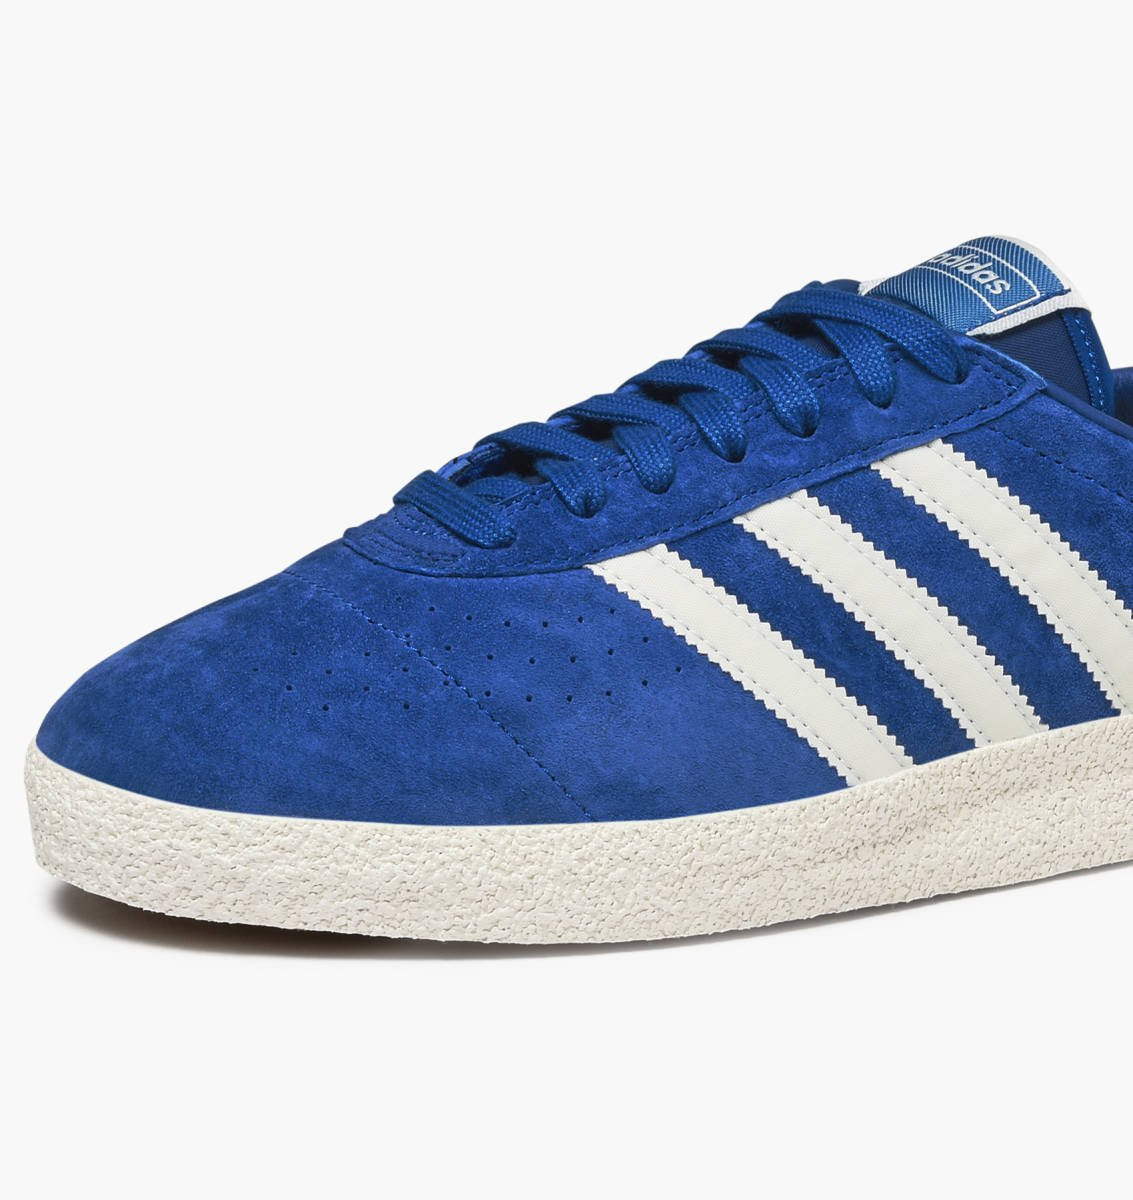 adidas Originals Munchen Super SPZL in blau - B41812 | everysize